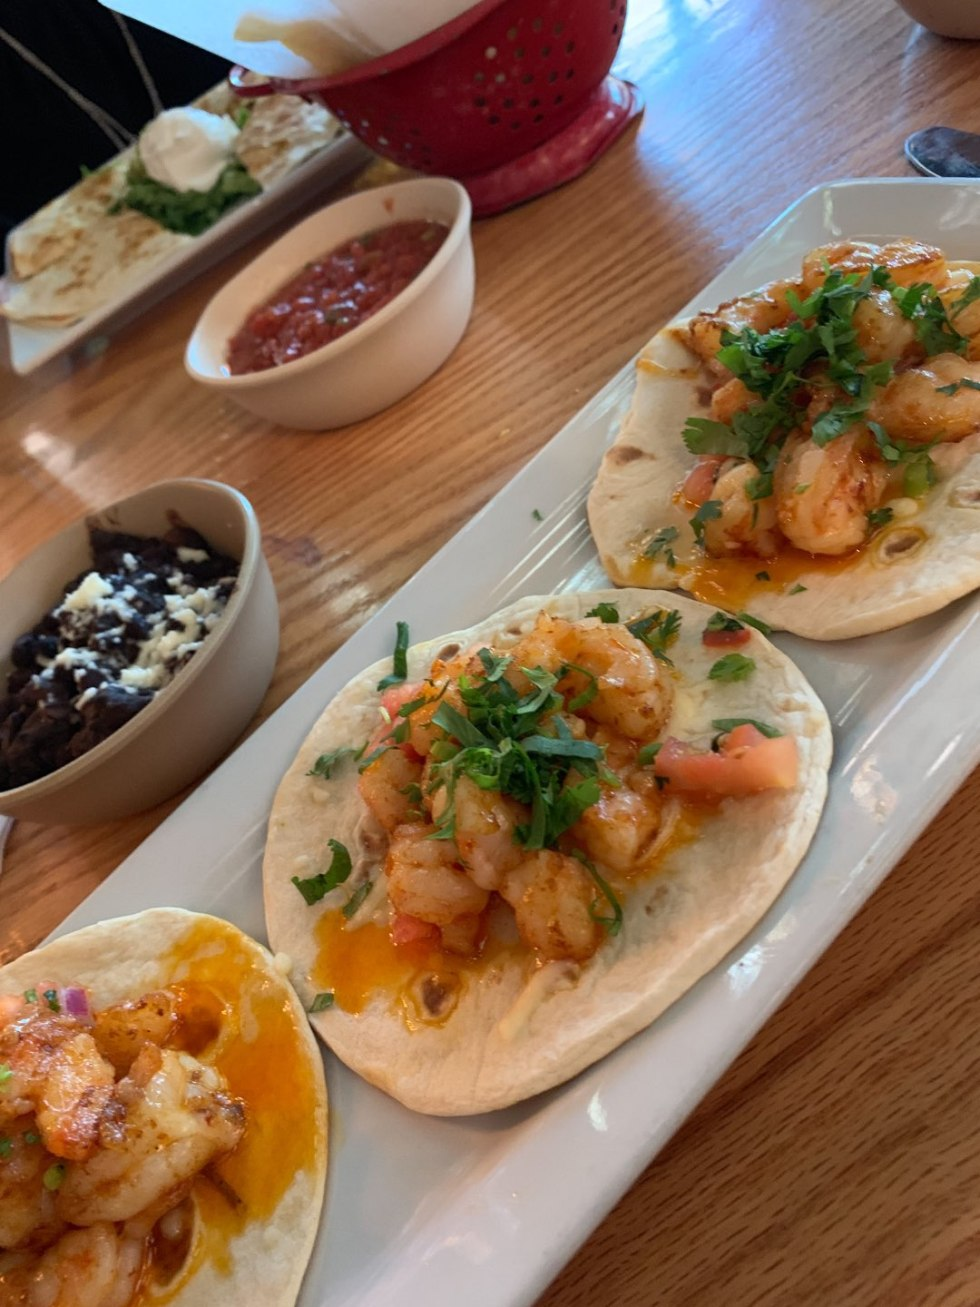 The 20 North Carolina Restaurants I Can't Wait to Visit after Quarantine - I'm Fixin' To - @mbg0112 | Best North Carolina Restaurants by popular N.C. blog, I'm Fixin' To: image of shrimp tacos at Gonza Tacos y Tequila restaurant.